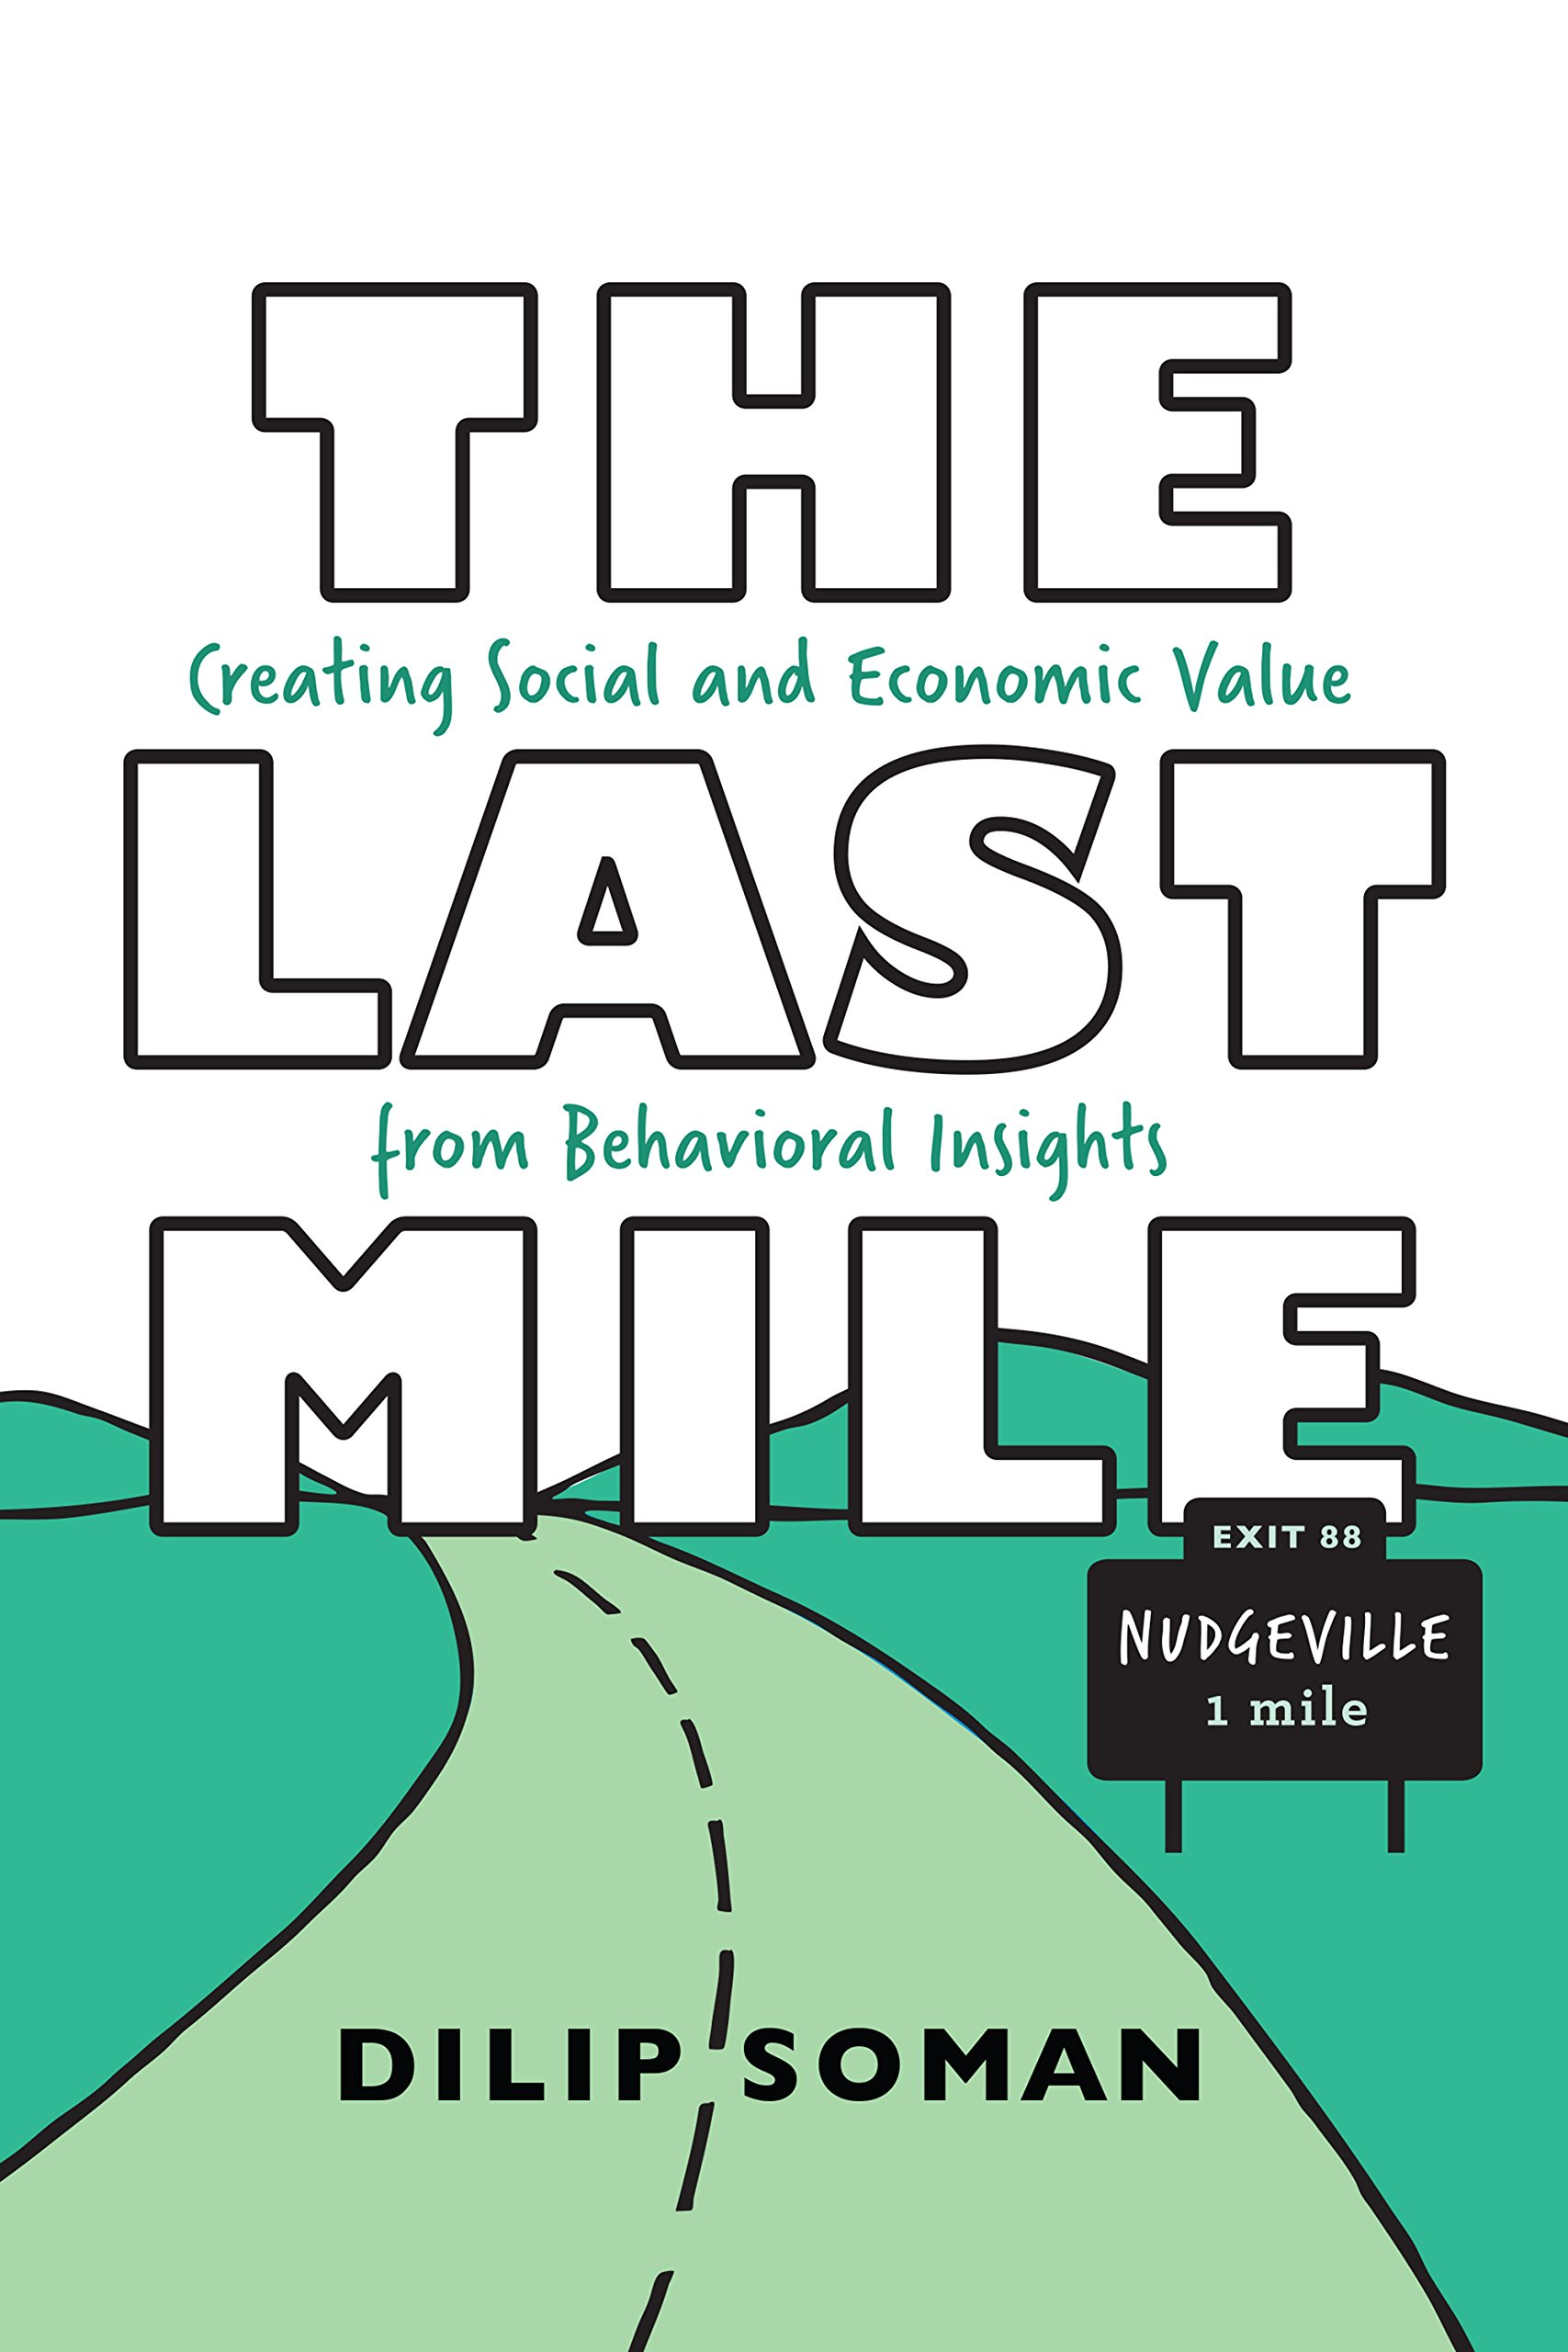 Cover of The Last Mile book by Dilip Soman